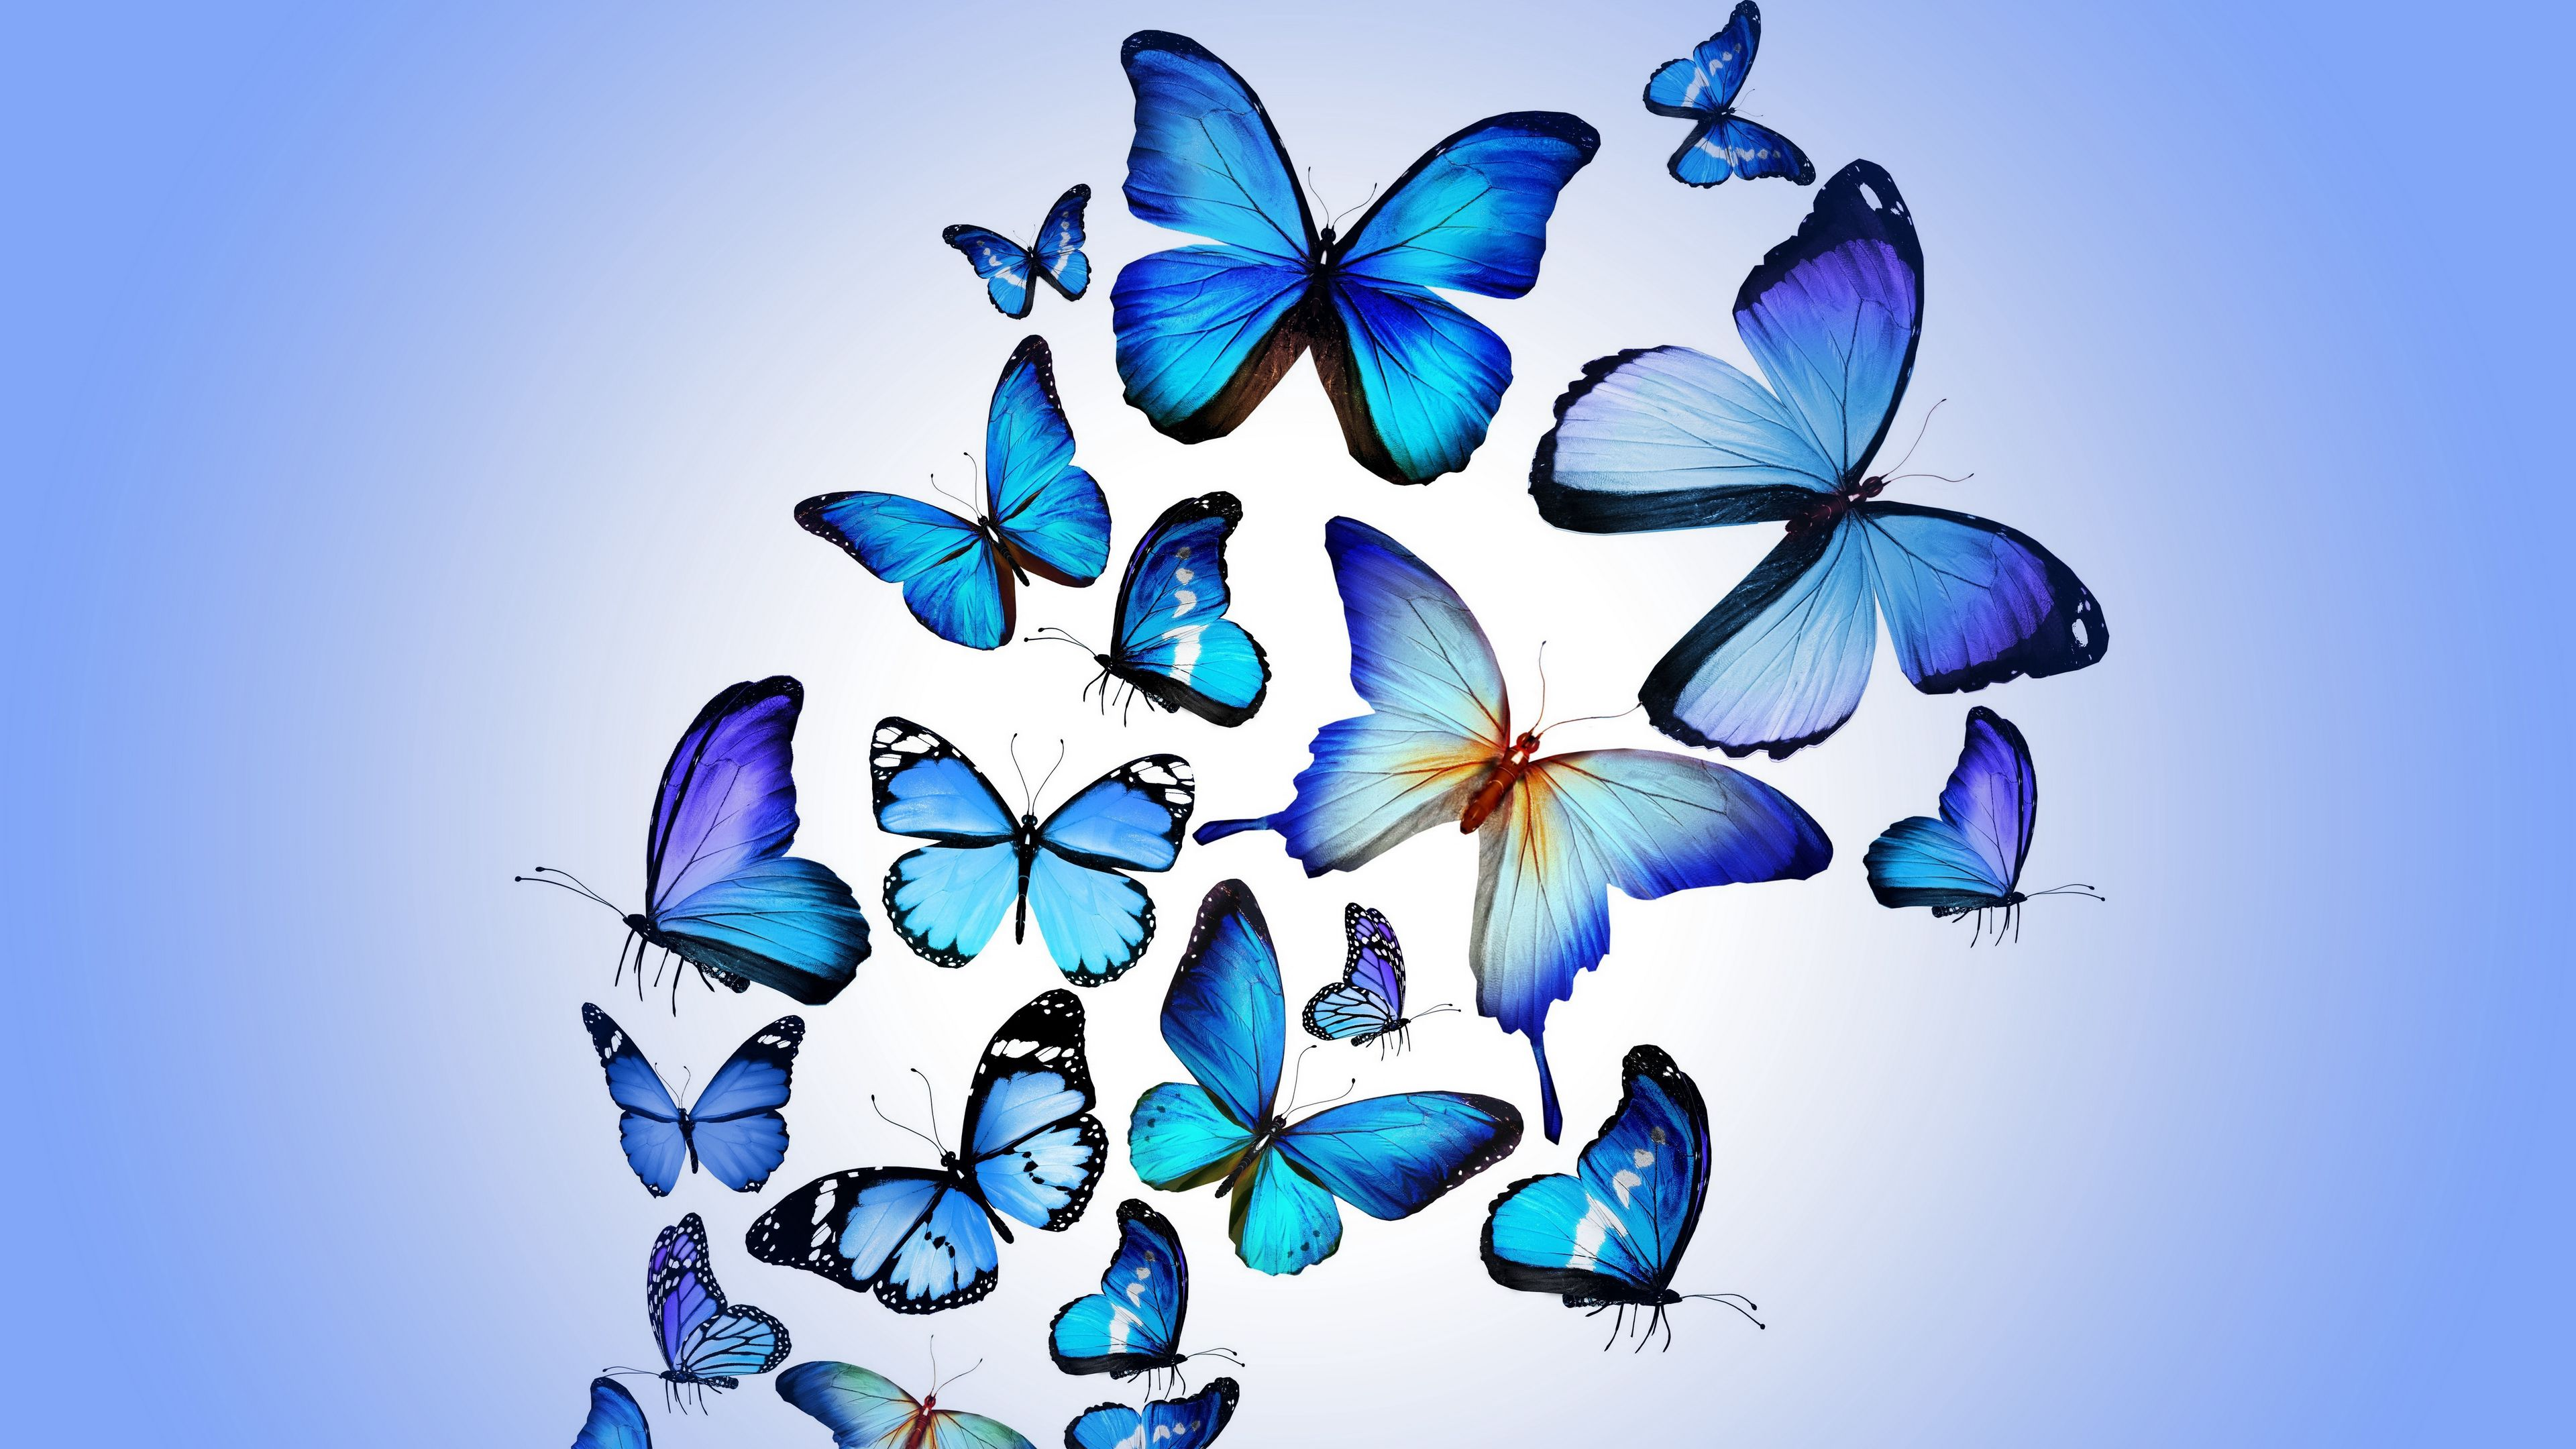 3840x2160 Wallpaper butterfly, colorful, blue, drawing, art, beautiful